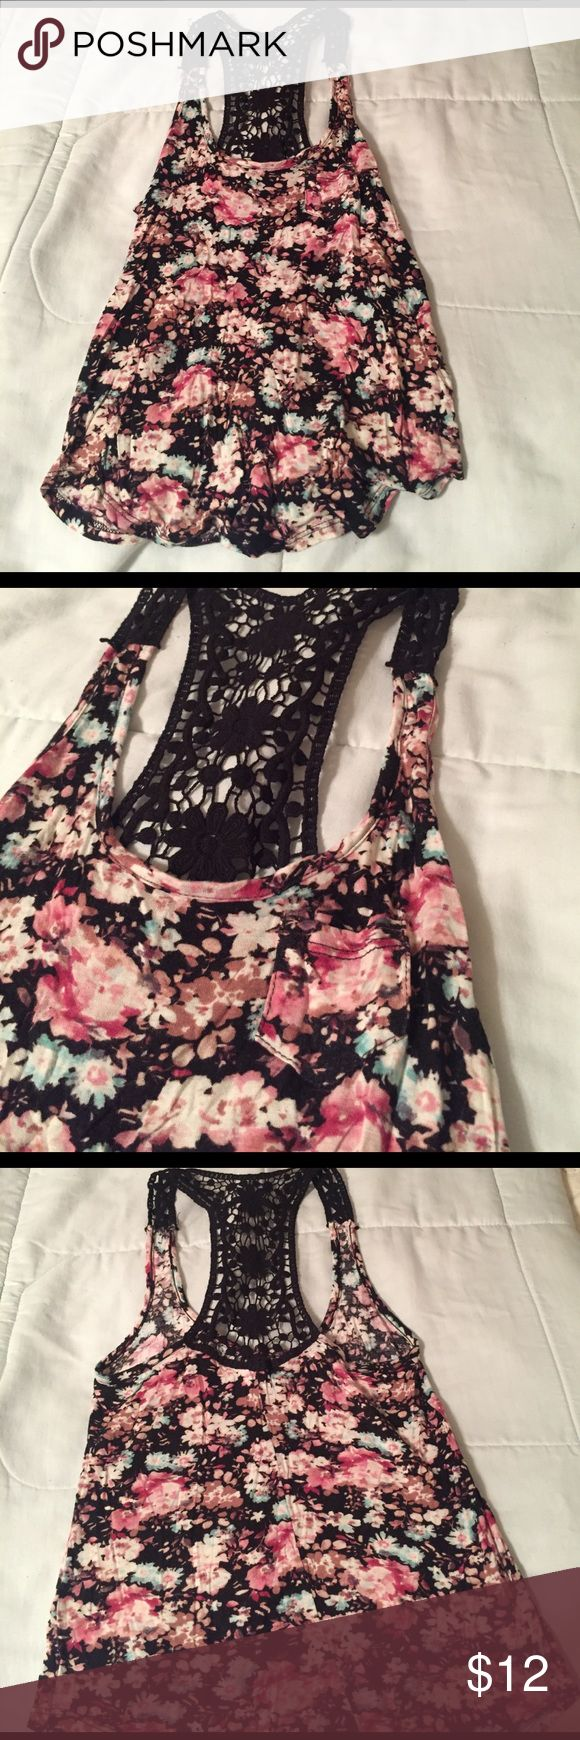 Tilly's floral tank Floral razorback tank with crocheted back. The colors are magenta, light pink, baby blue, cream, and black. This top is in perfect condition. Fits slightly loose. Full Tilt Tops Tank Tops